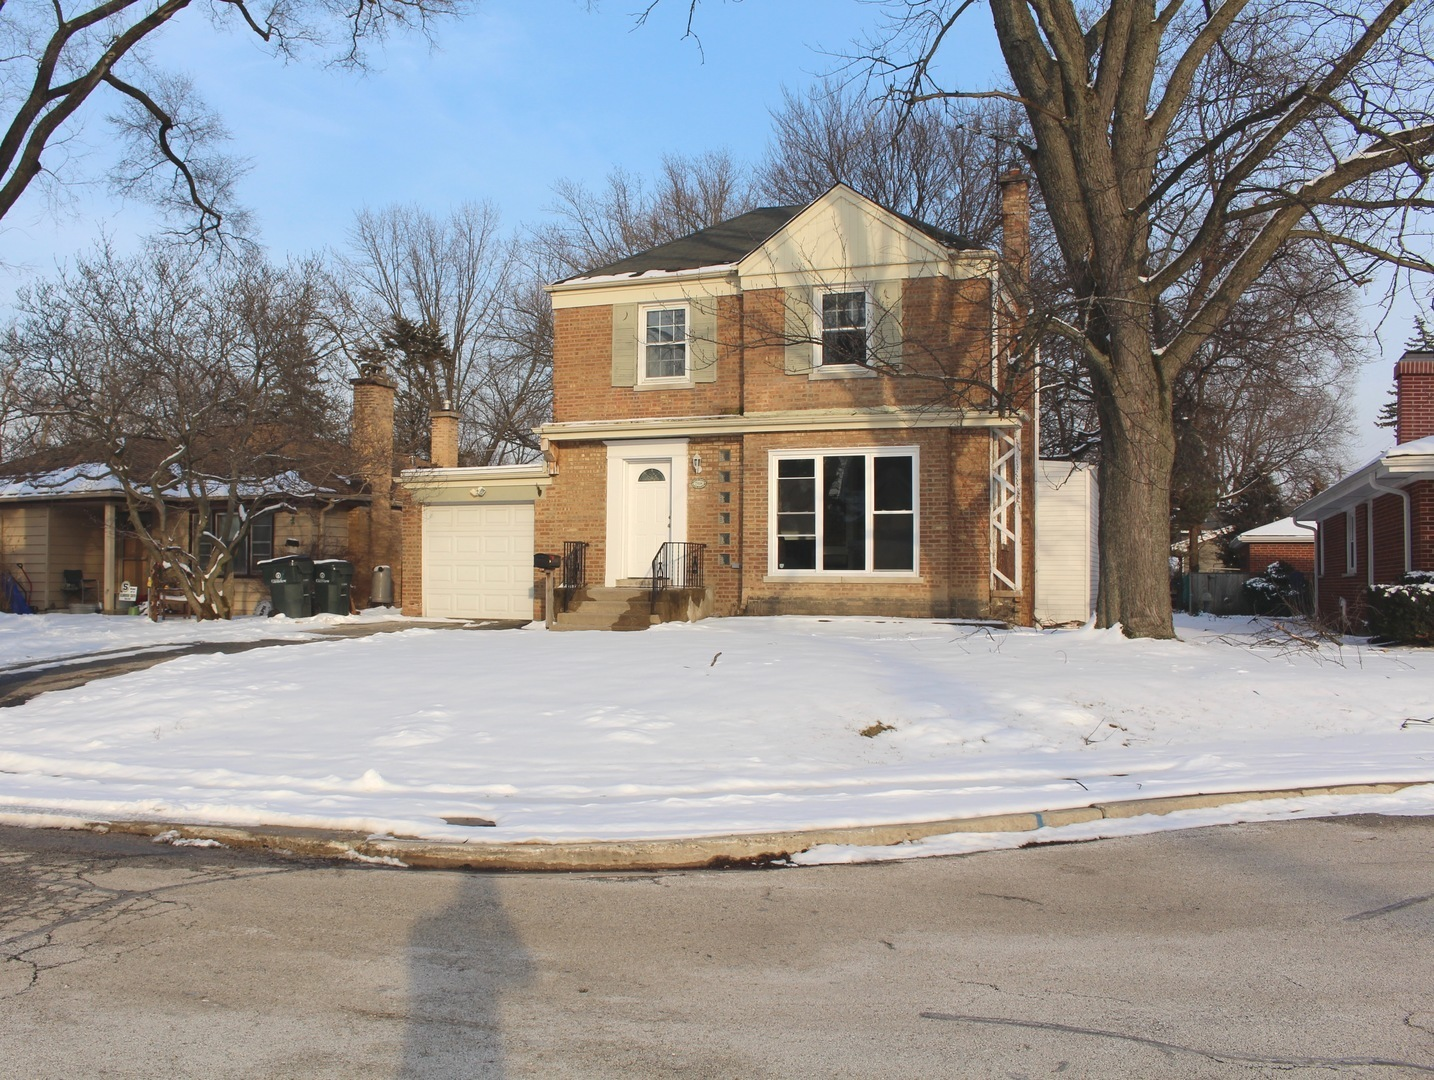 Cul de Sac property for sale at 7 Elm Street, Glenview Illinois 60025